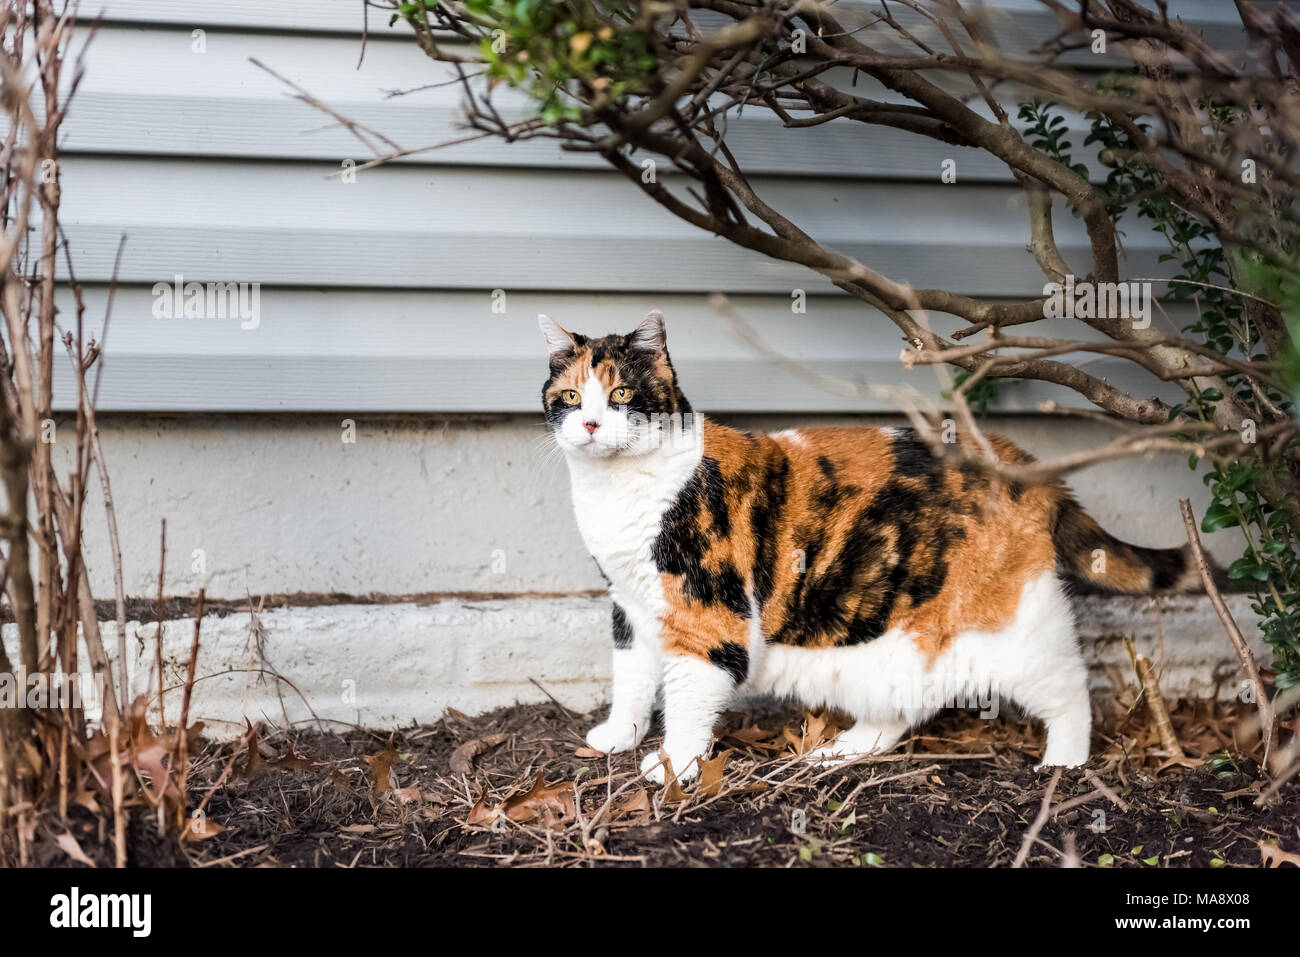 Calico cat outside green garden face under bushes, curious hunting eyes on porch, front or back yard of home or house wall siding - Stock Image